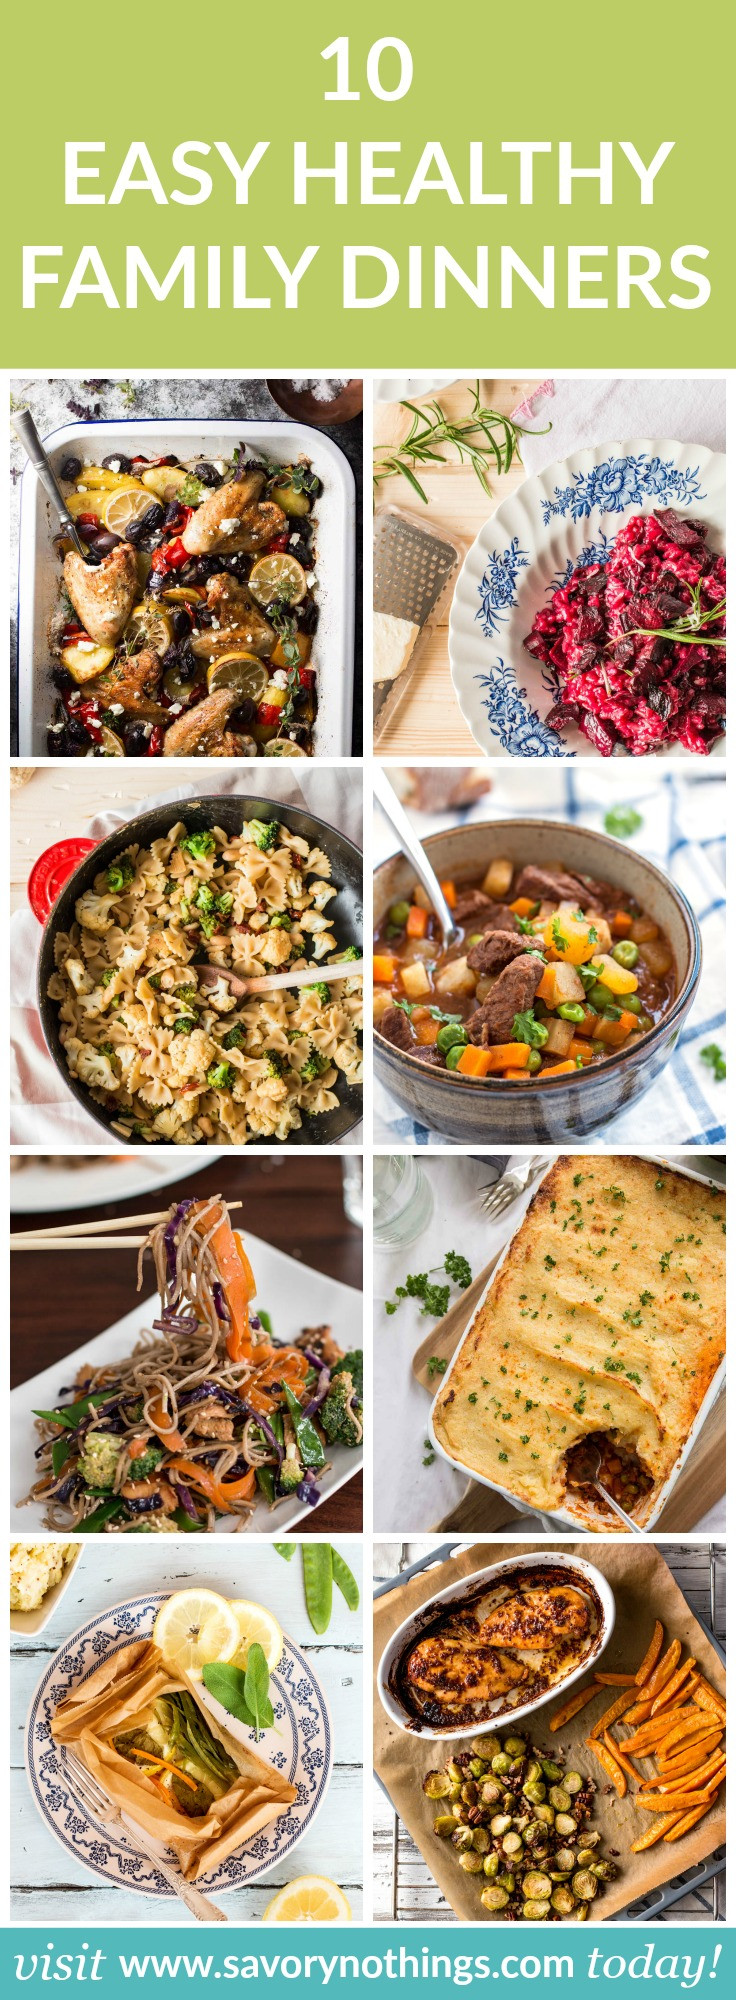 Great Healthy Dinners  10 Healthy Family Dinners Easy Recipes for Busy Weeknights